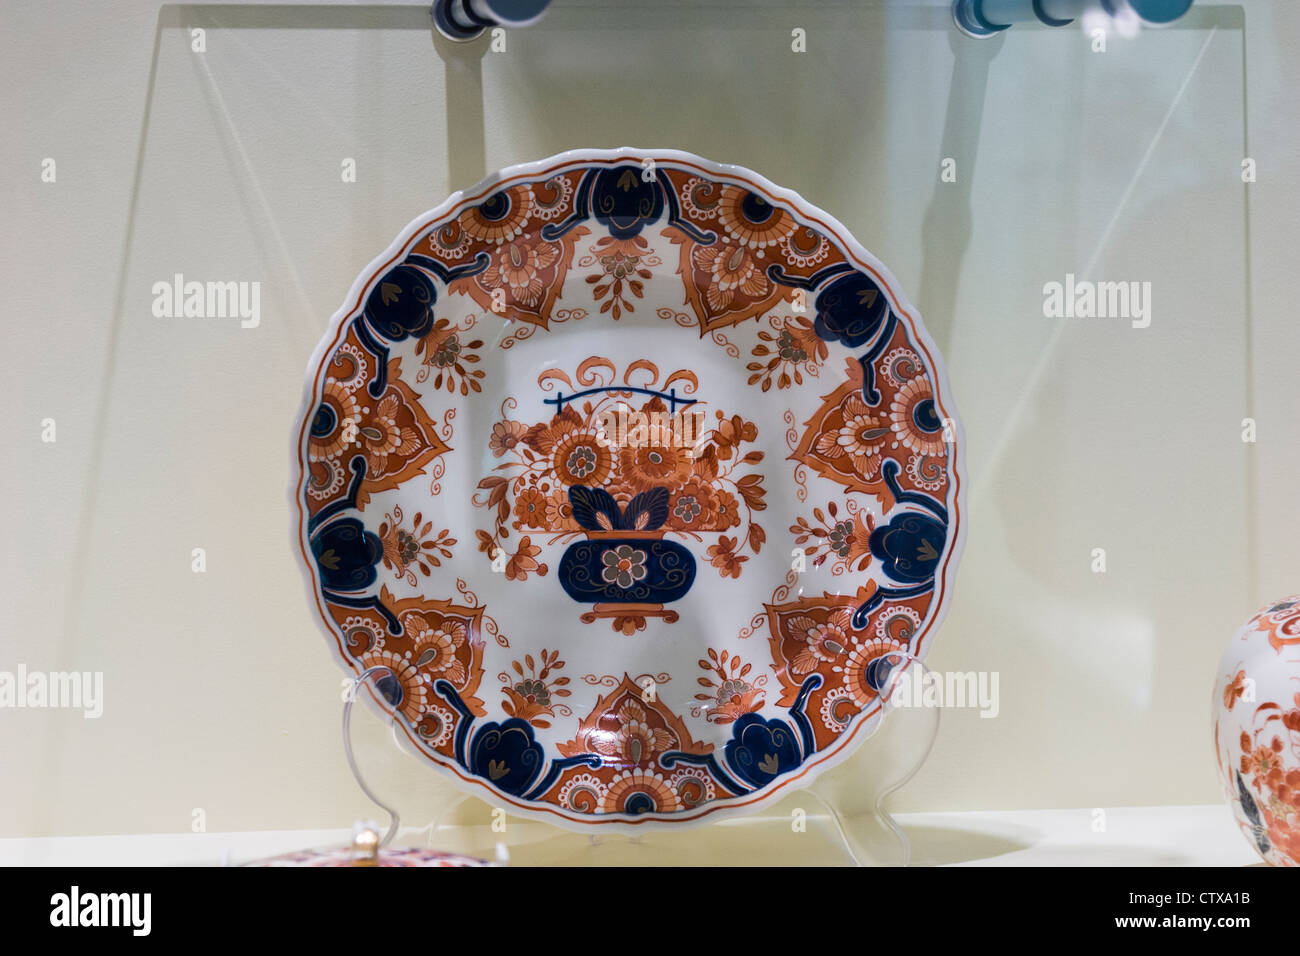 Artistic Pottery in Delft Factory Showroom - Stock Image